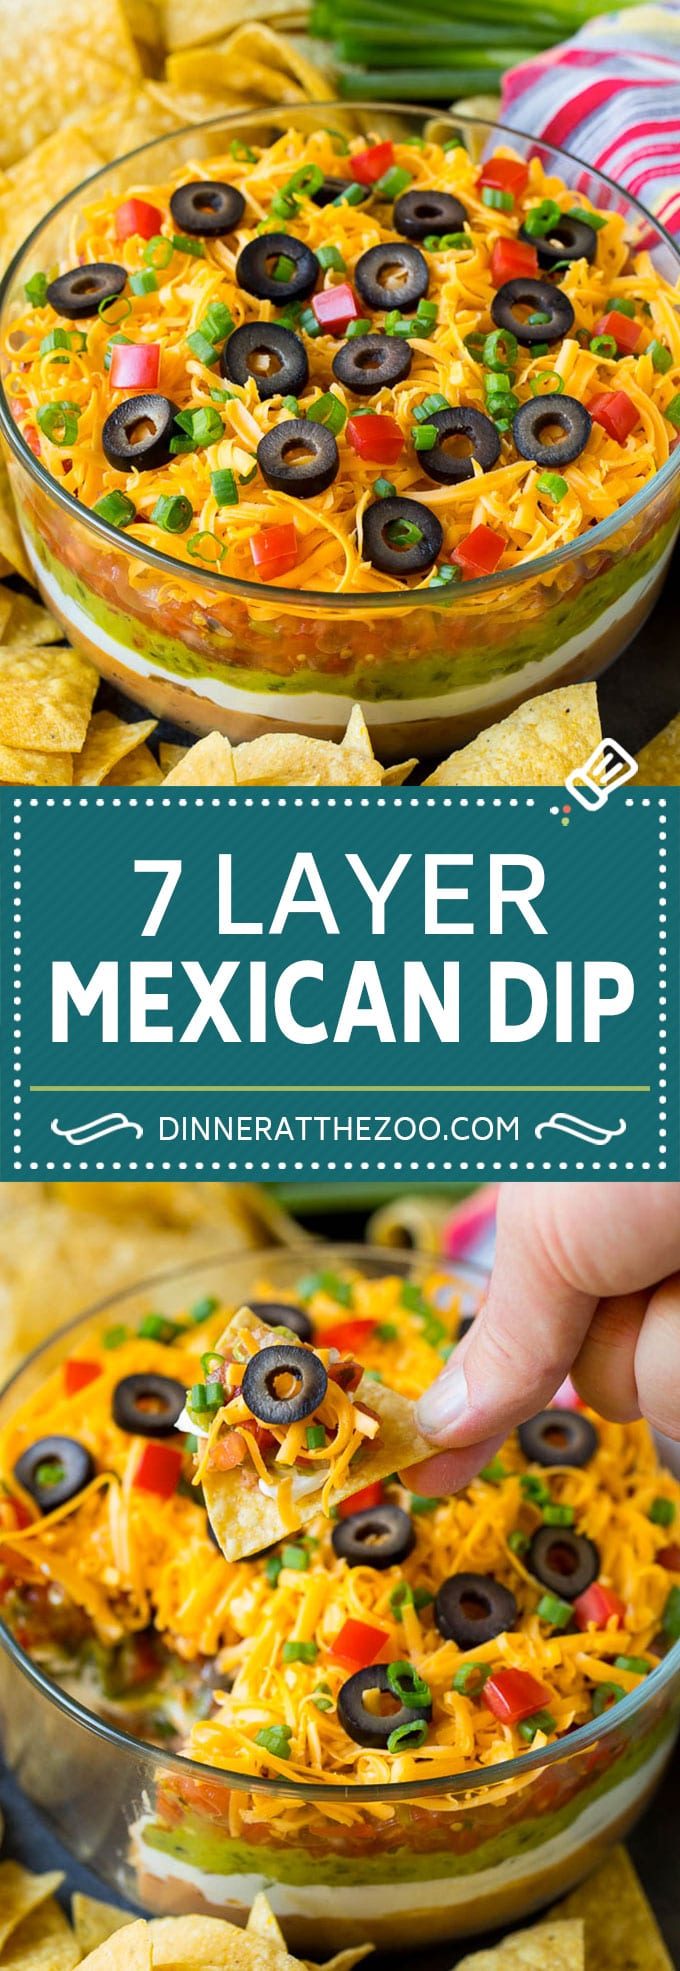 7 Layer Dip Recipe | Mexican Dip #beans #dip #appetizer #avocado #salsa #dinneratthezoo